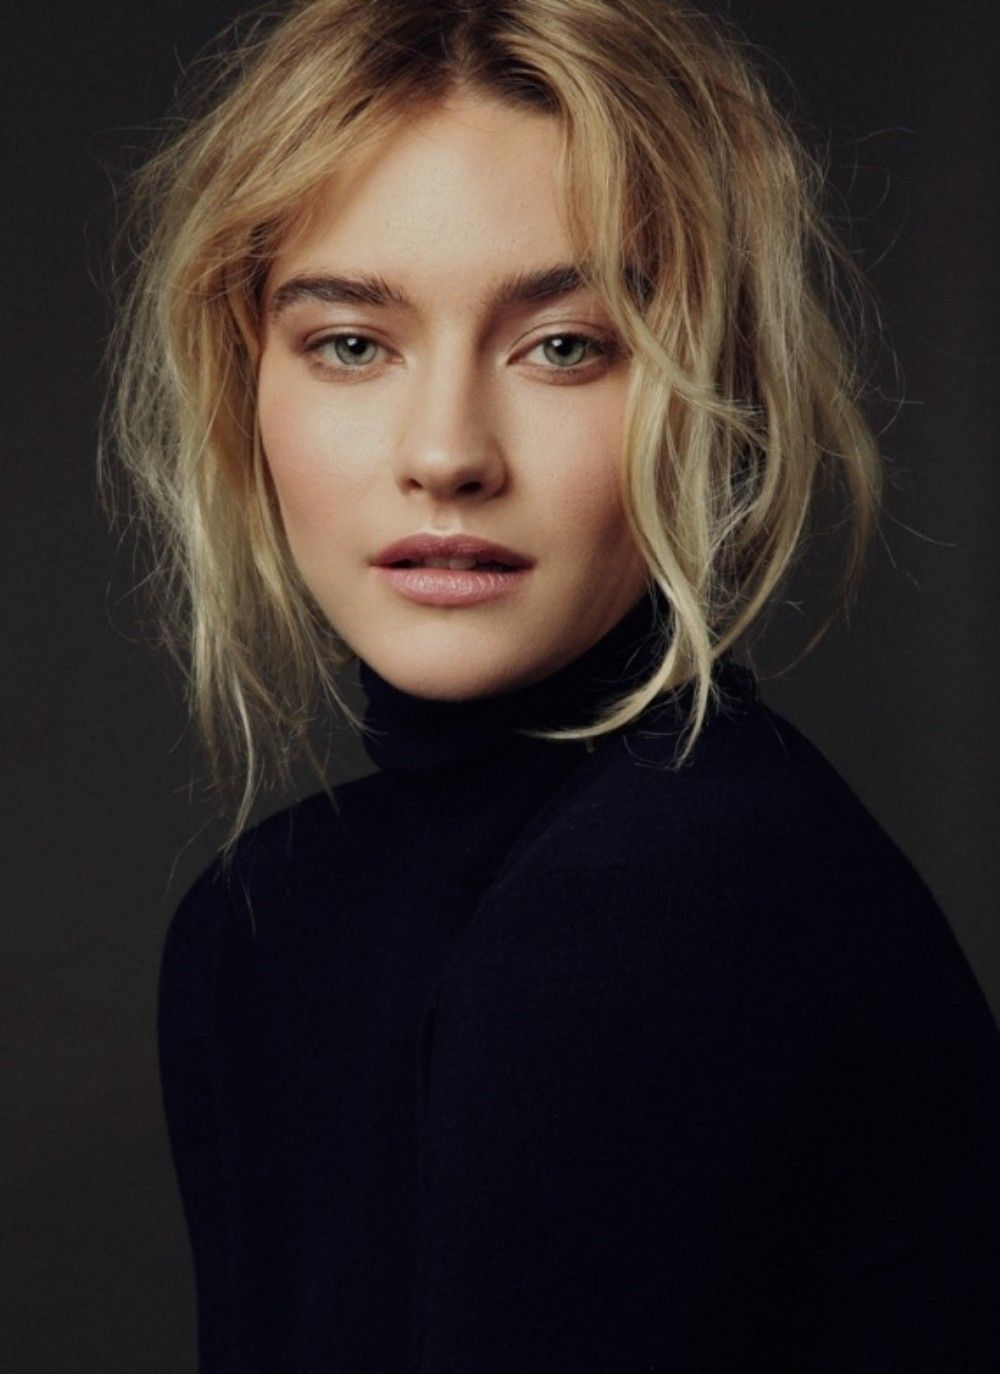 Cool 30 Minimalist Make Up Looks to Get Inspired from https://www.fashionetter.com/2017/04/07/minimalist-make-looks-get-inspired/